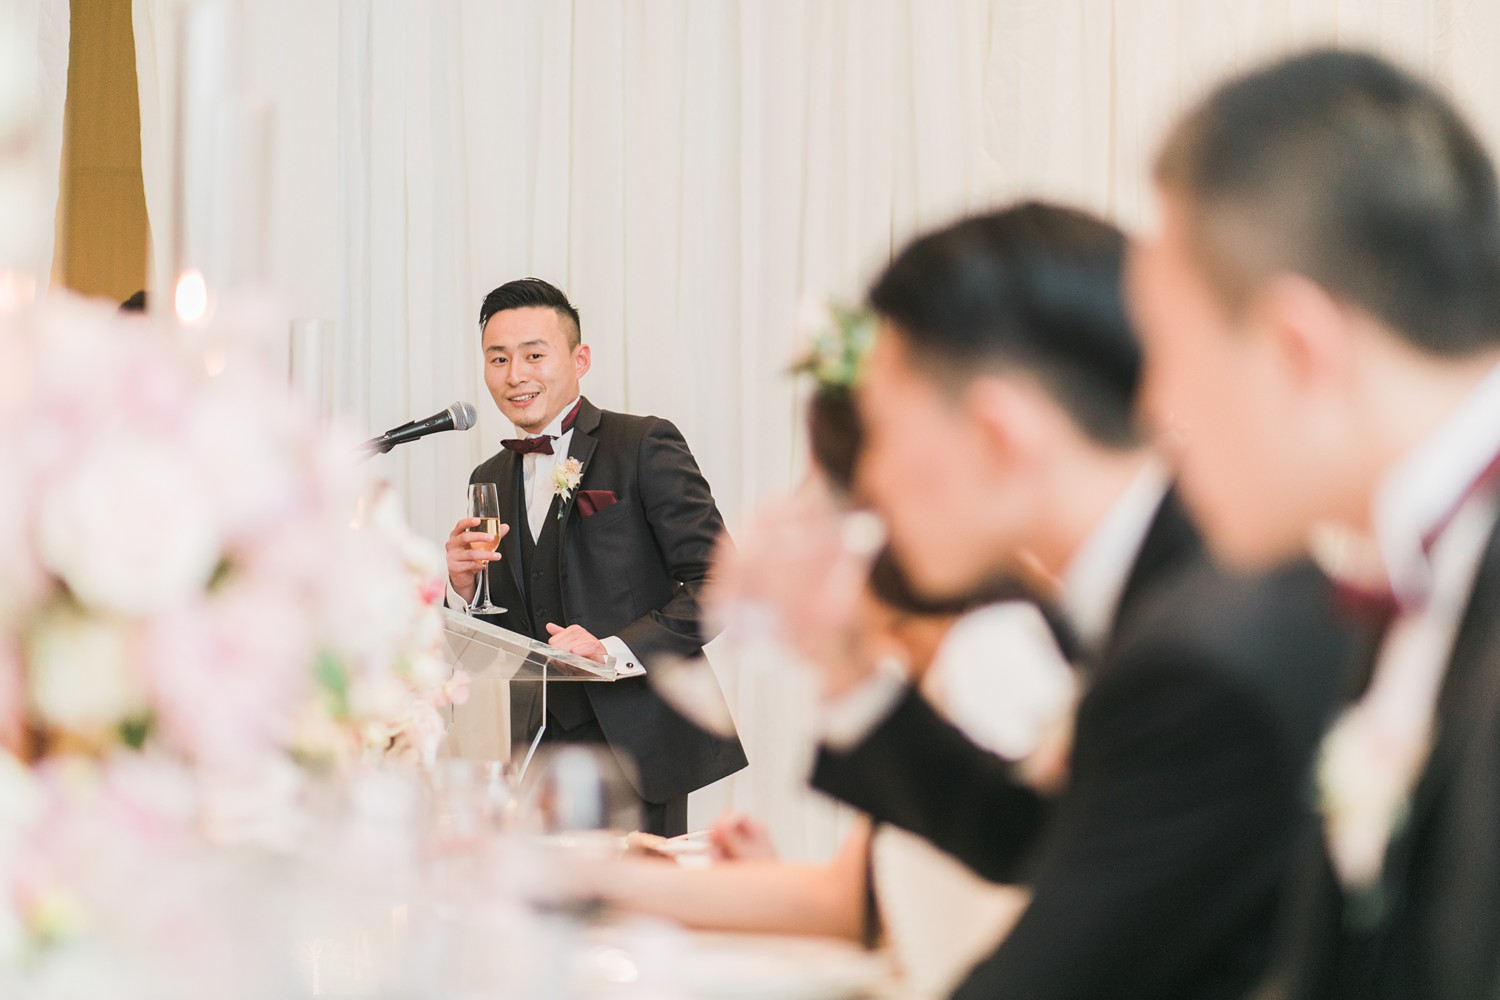 Wedding Speeches Vinci Room Luxury Yorkville Toronto Four Season Hotel Wedding Photos with Chinese Bride and Groom